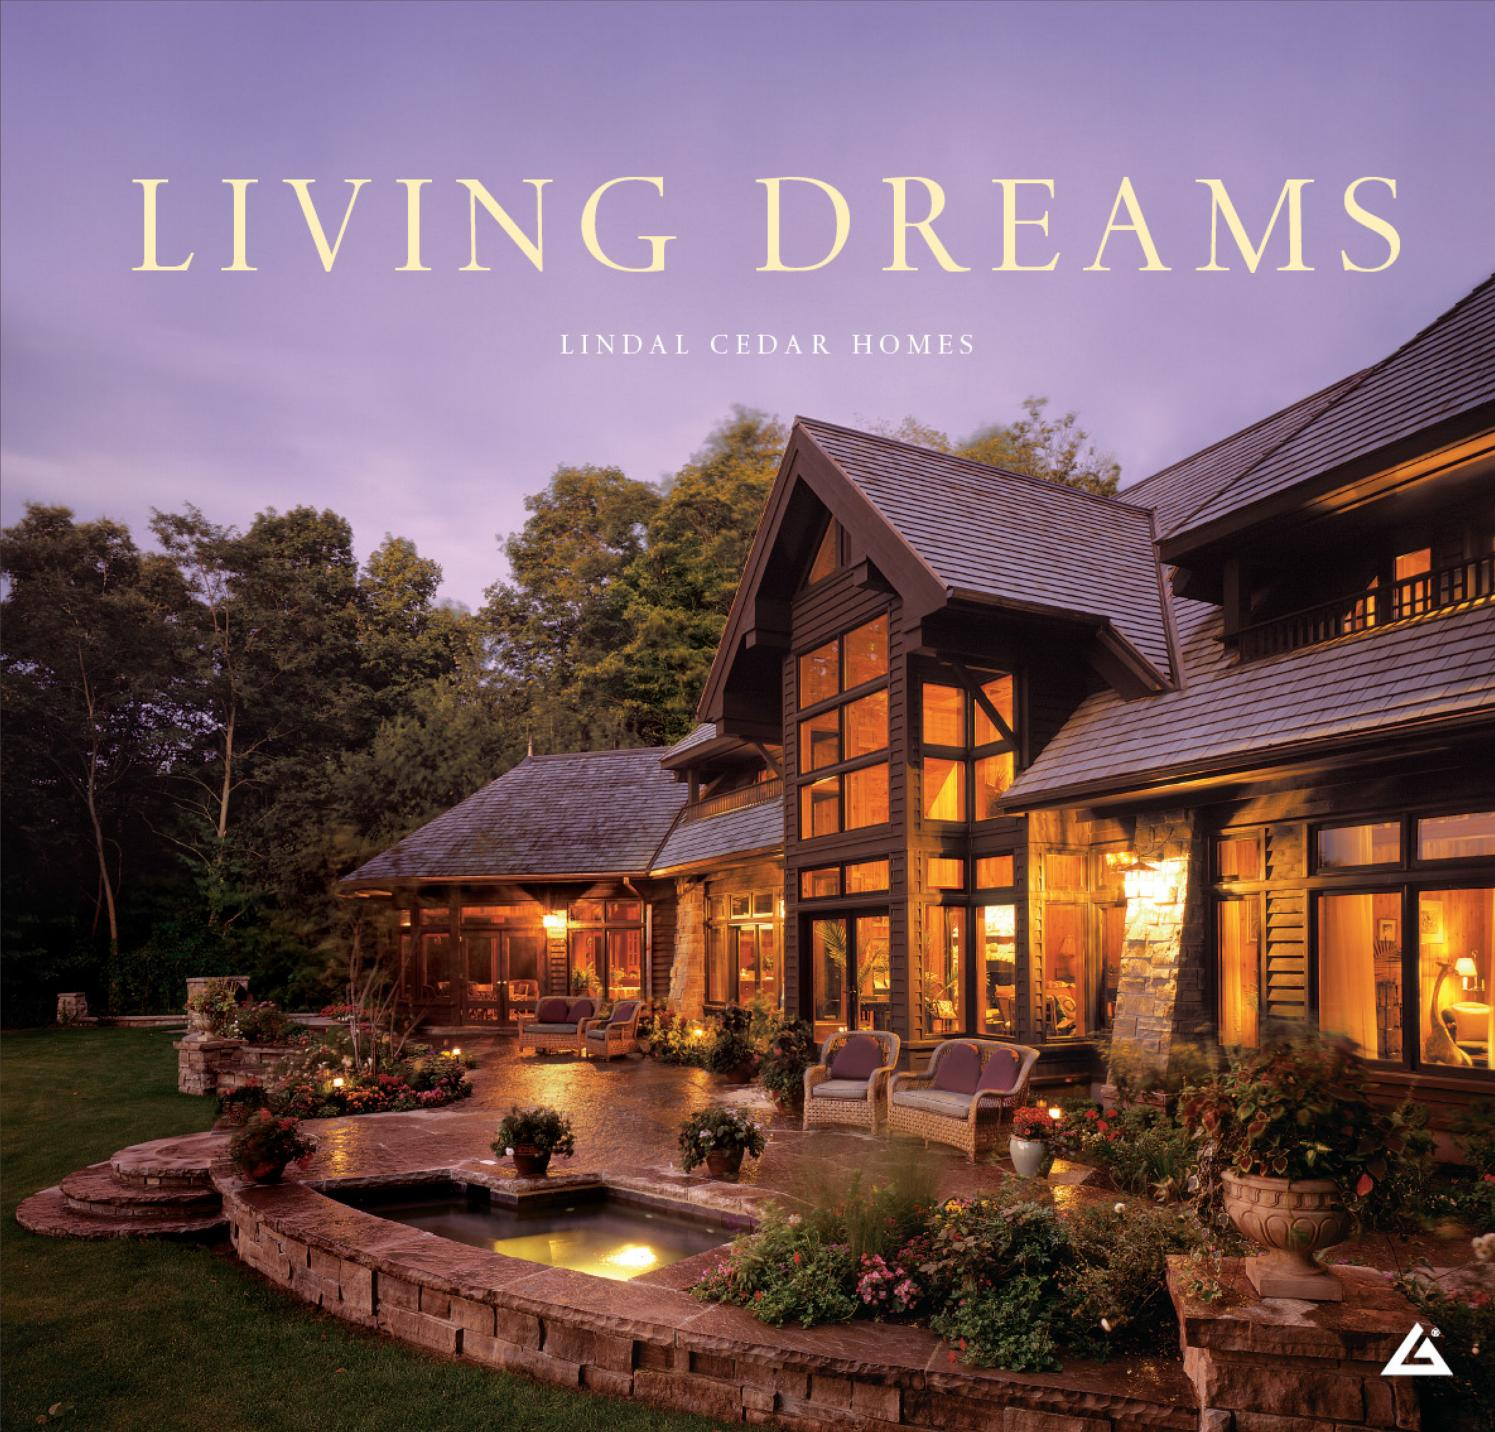 Living dreams lindal cedar homes plan book by lindal cedar homes issuu